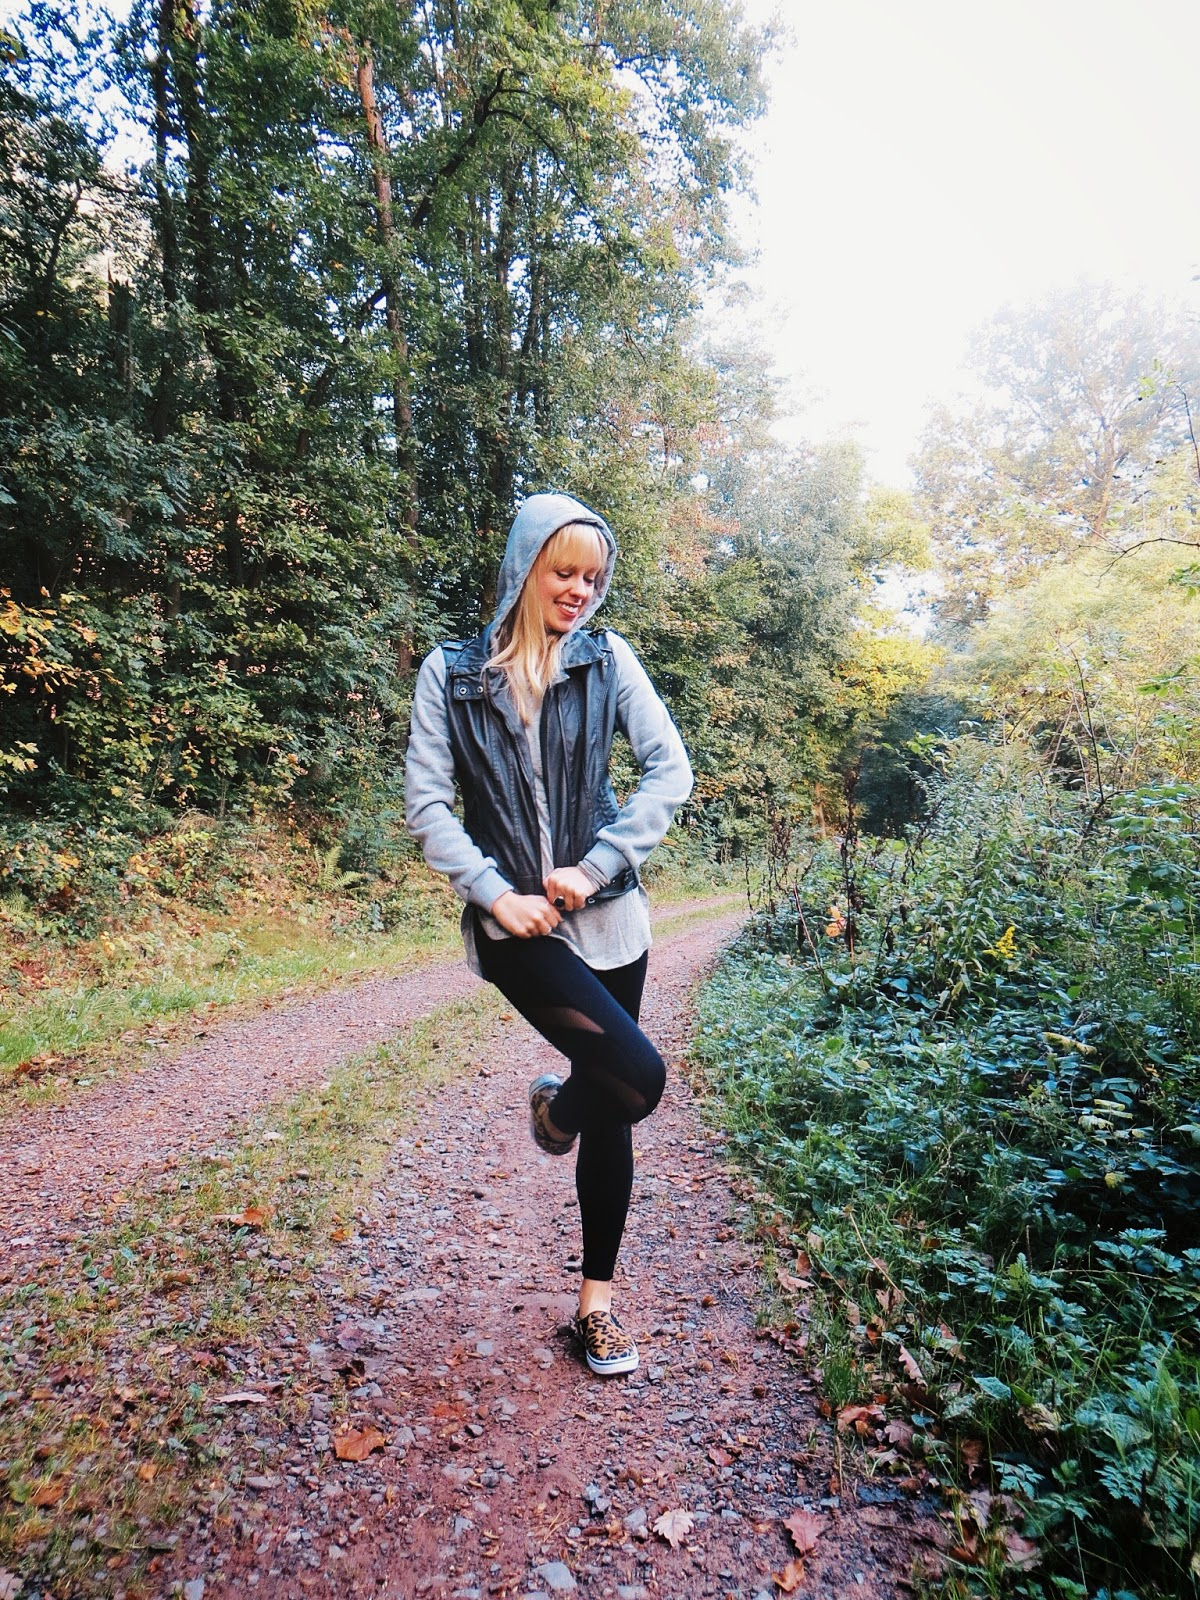 deb shops grey moto jacket, deb shops grey split hem tee, deb shops black illusion leggings, deb shops leopard print slip ons, marisa diane designs paua shell ring, casual outfit ideas, casual style, sporty style, athletic style outfit, walk in the woods, fog